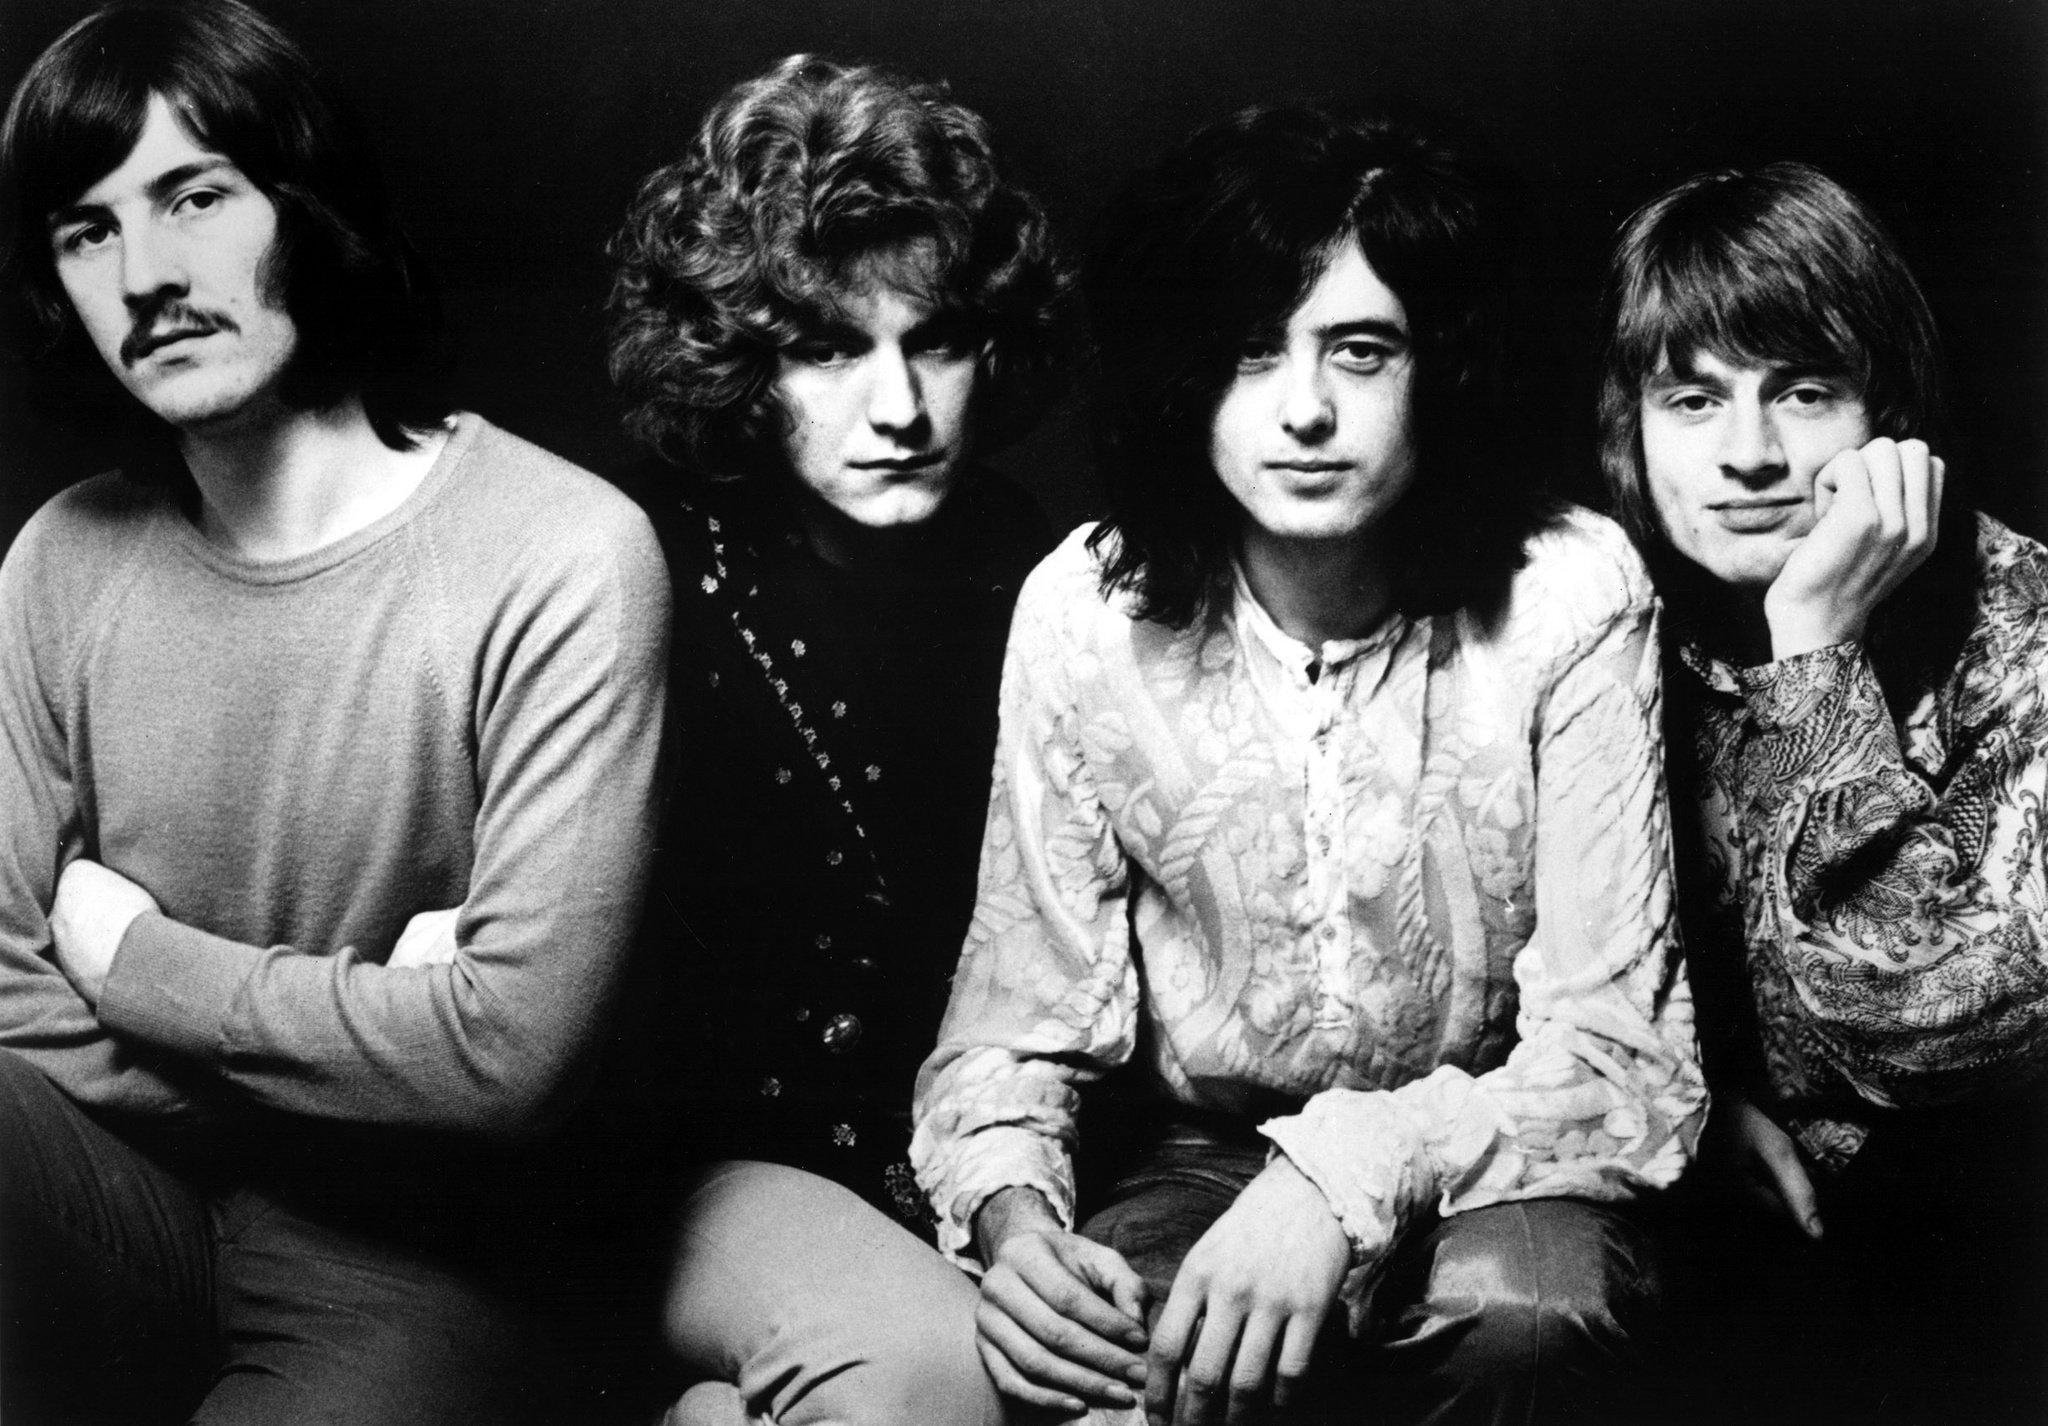 a history of the rise and fall of led zeppelin an english rock band The album is titled: in through the out door in through the out door is the eighth studio album by the english rock band led zeppelin it was recorded over a three week peri od in november and december 1978 at abba's polar studios in stockholm, sweden, and released by swan song records on 15 august 1979 in through the out door was the band.